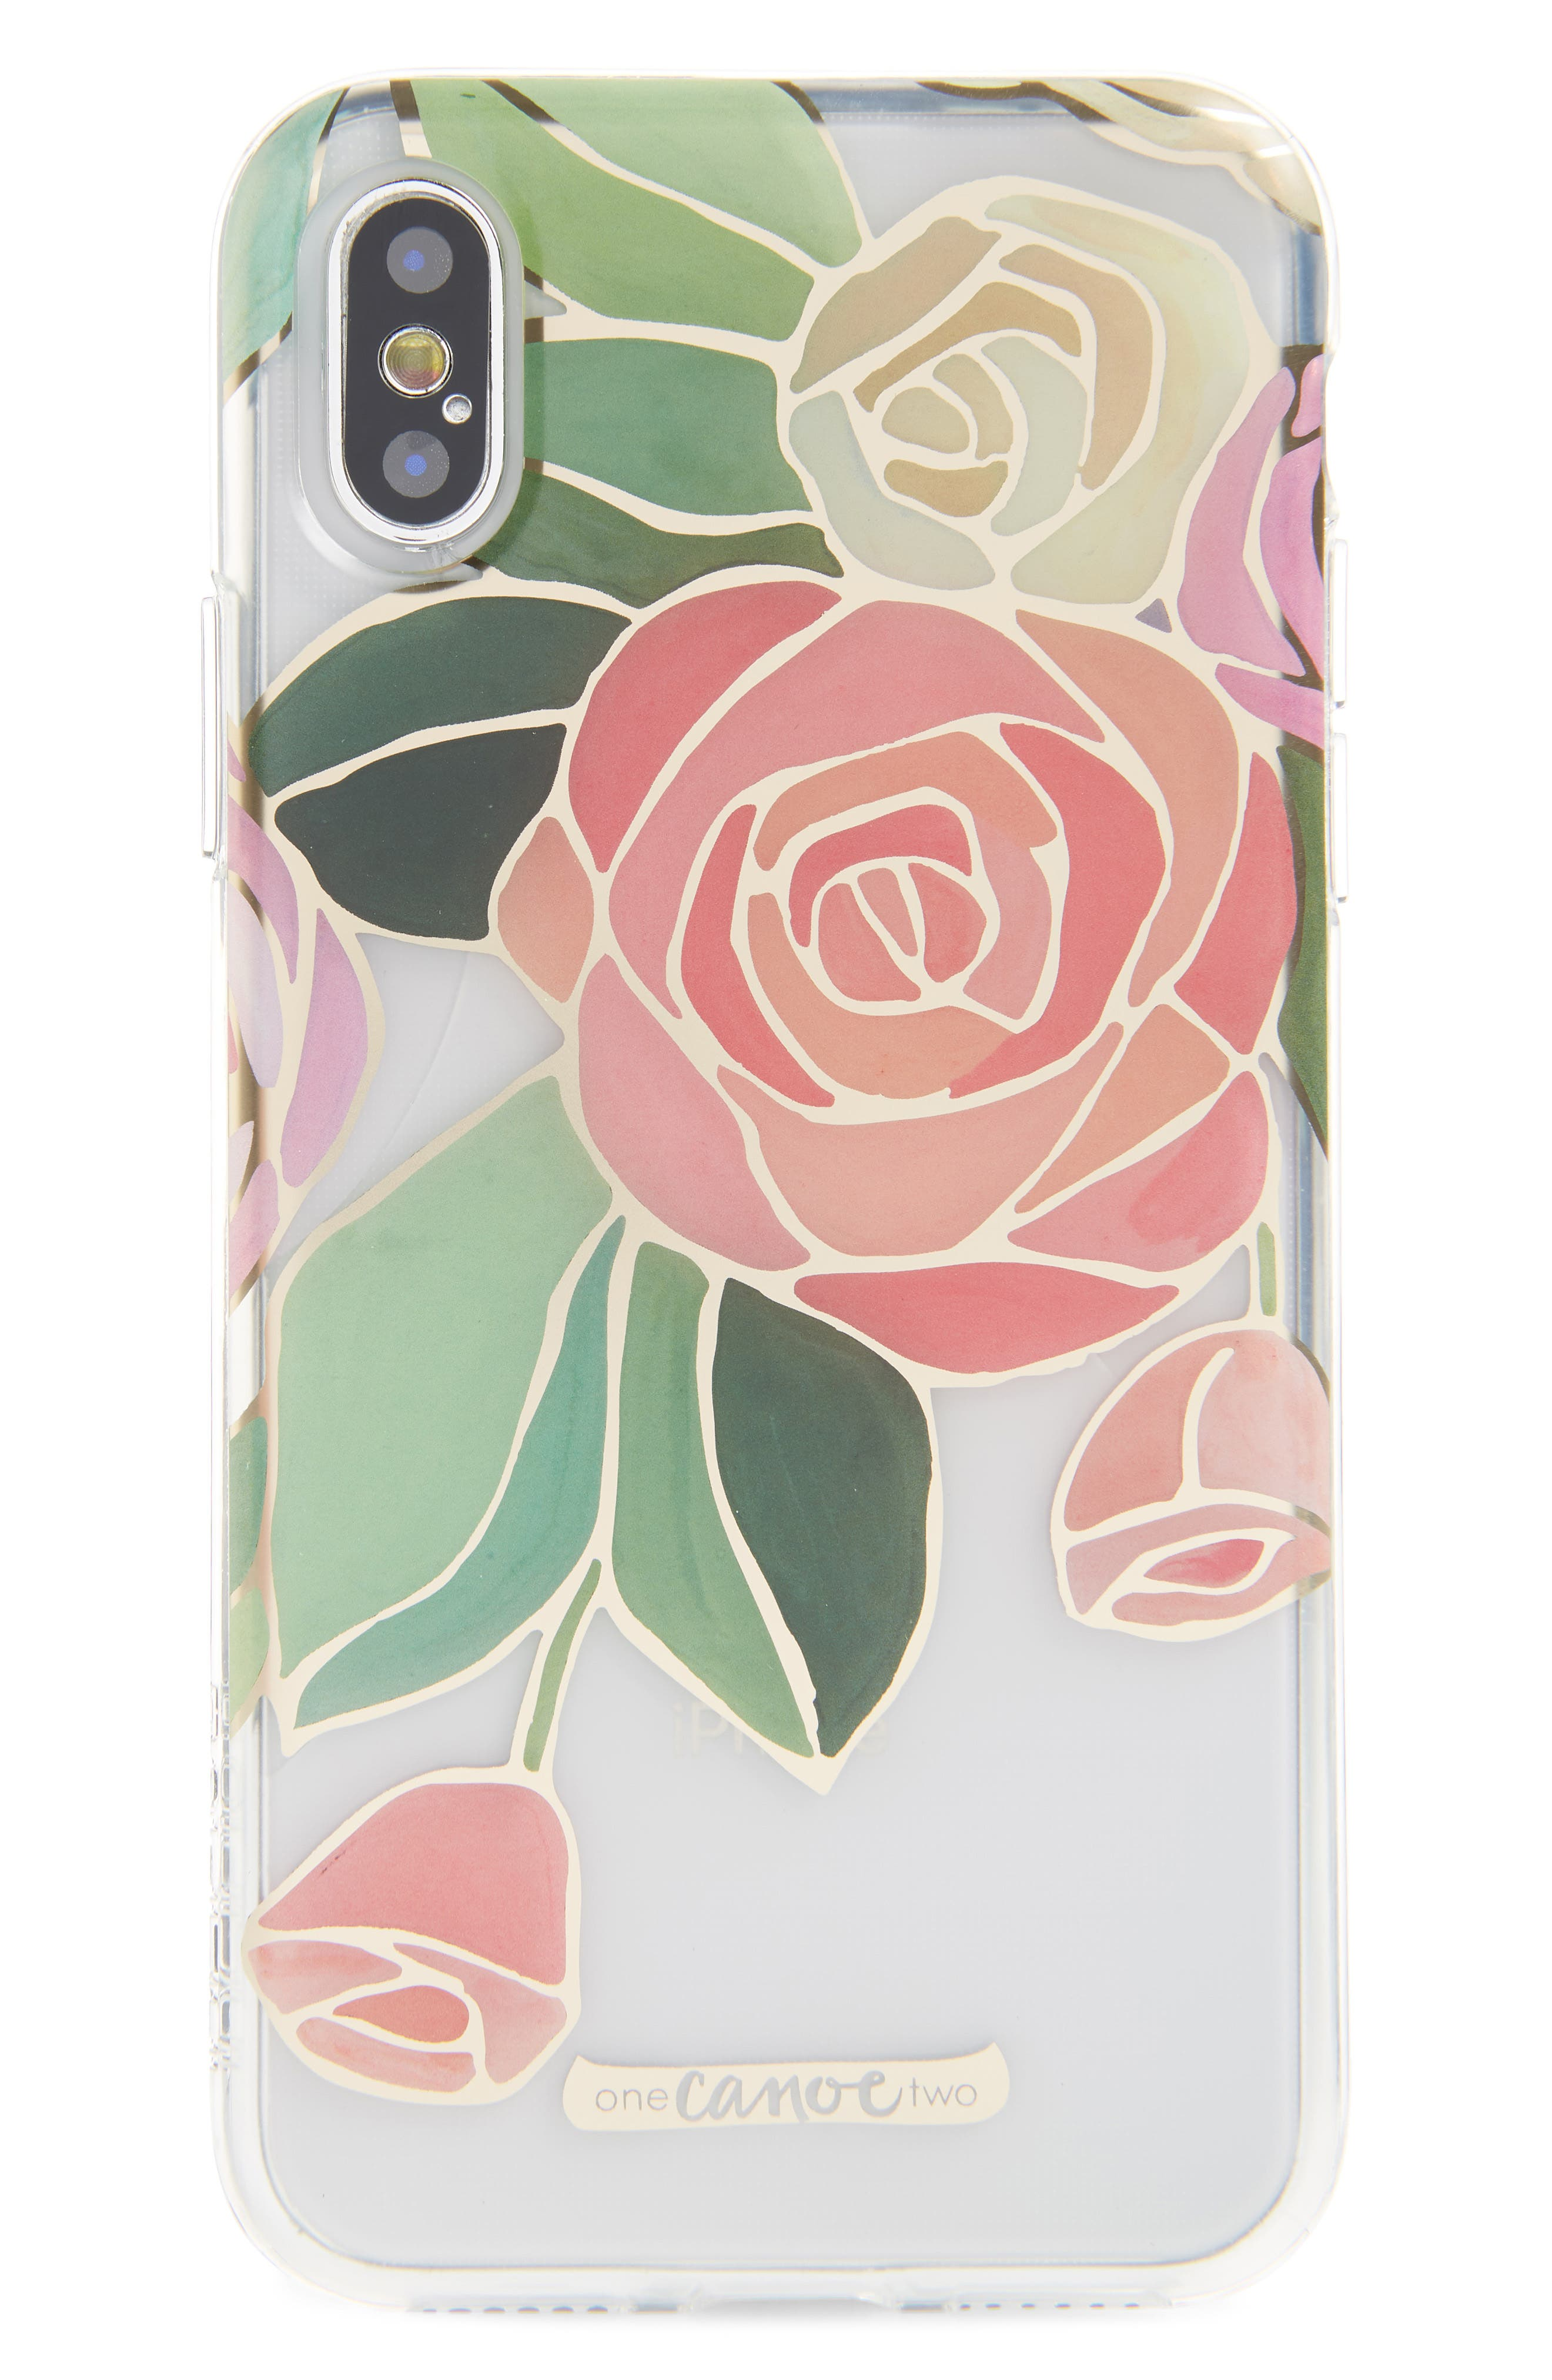 One Canoe Two Roses iPhone X/Xs Case,                             Main thumbnail 1, color,                             650